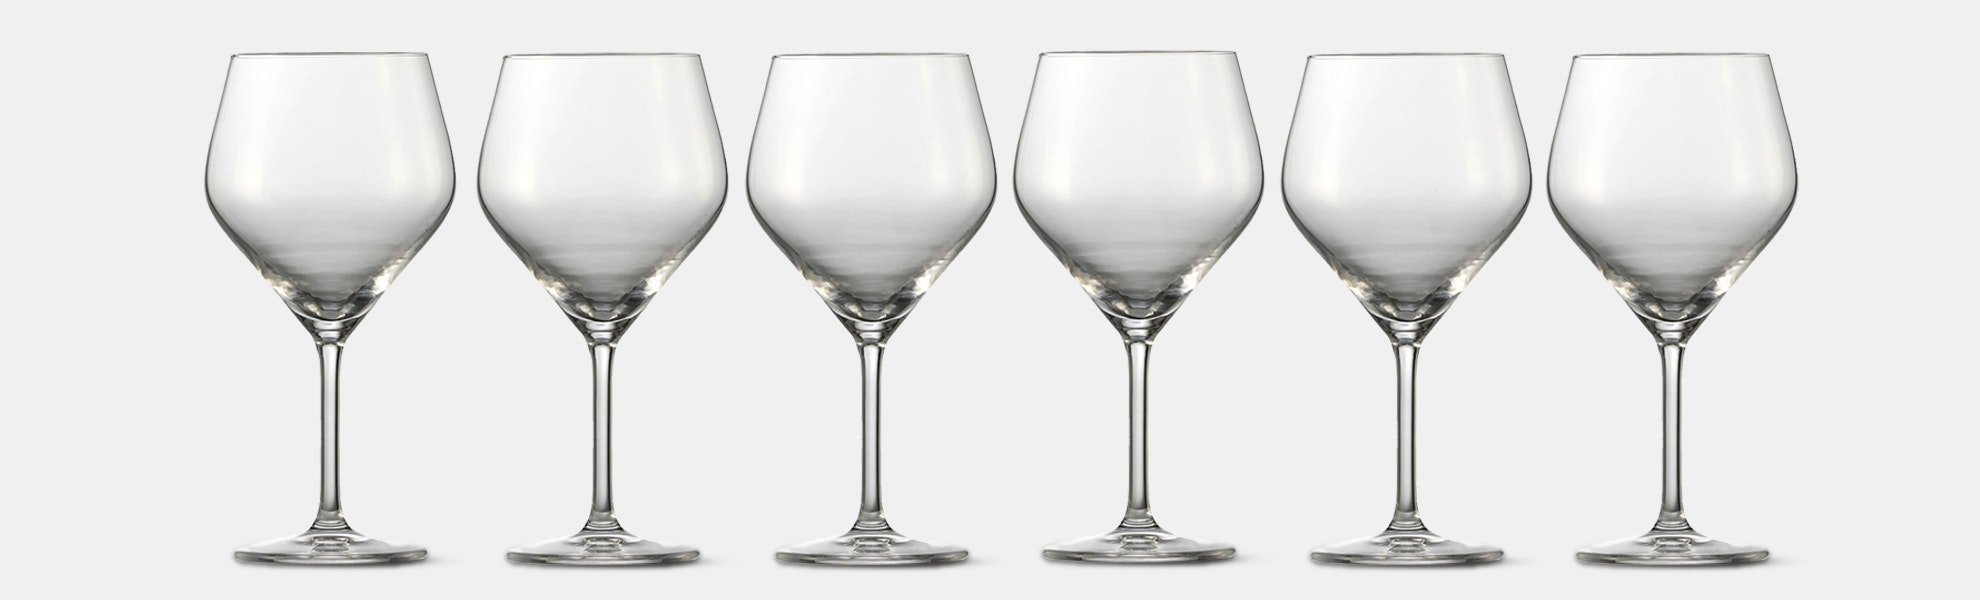 Schott Zwiesel Audience Burgundy Glasses (Set of 6)